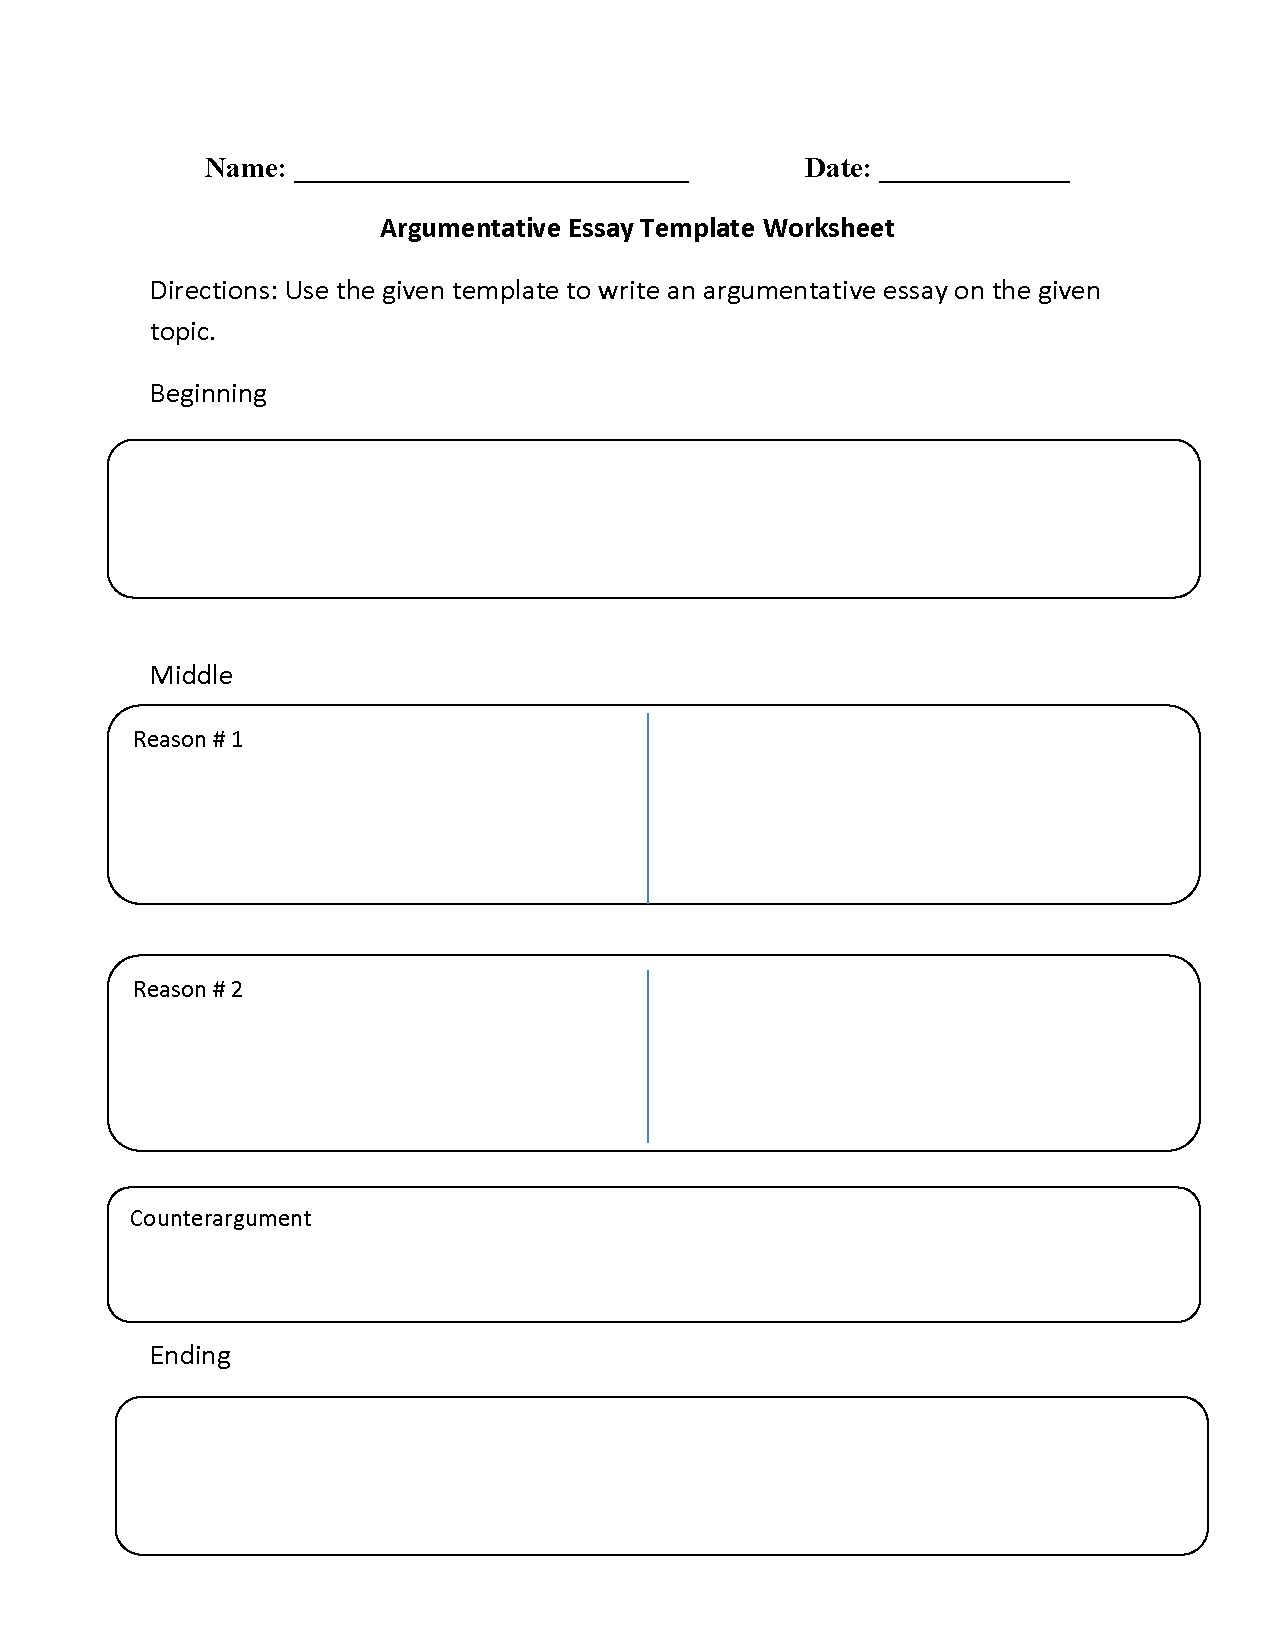 Argumentative Essay Template Worksheets